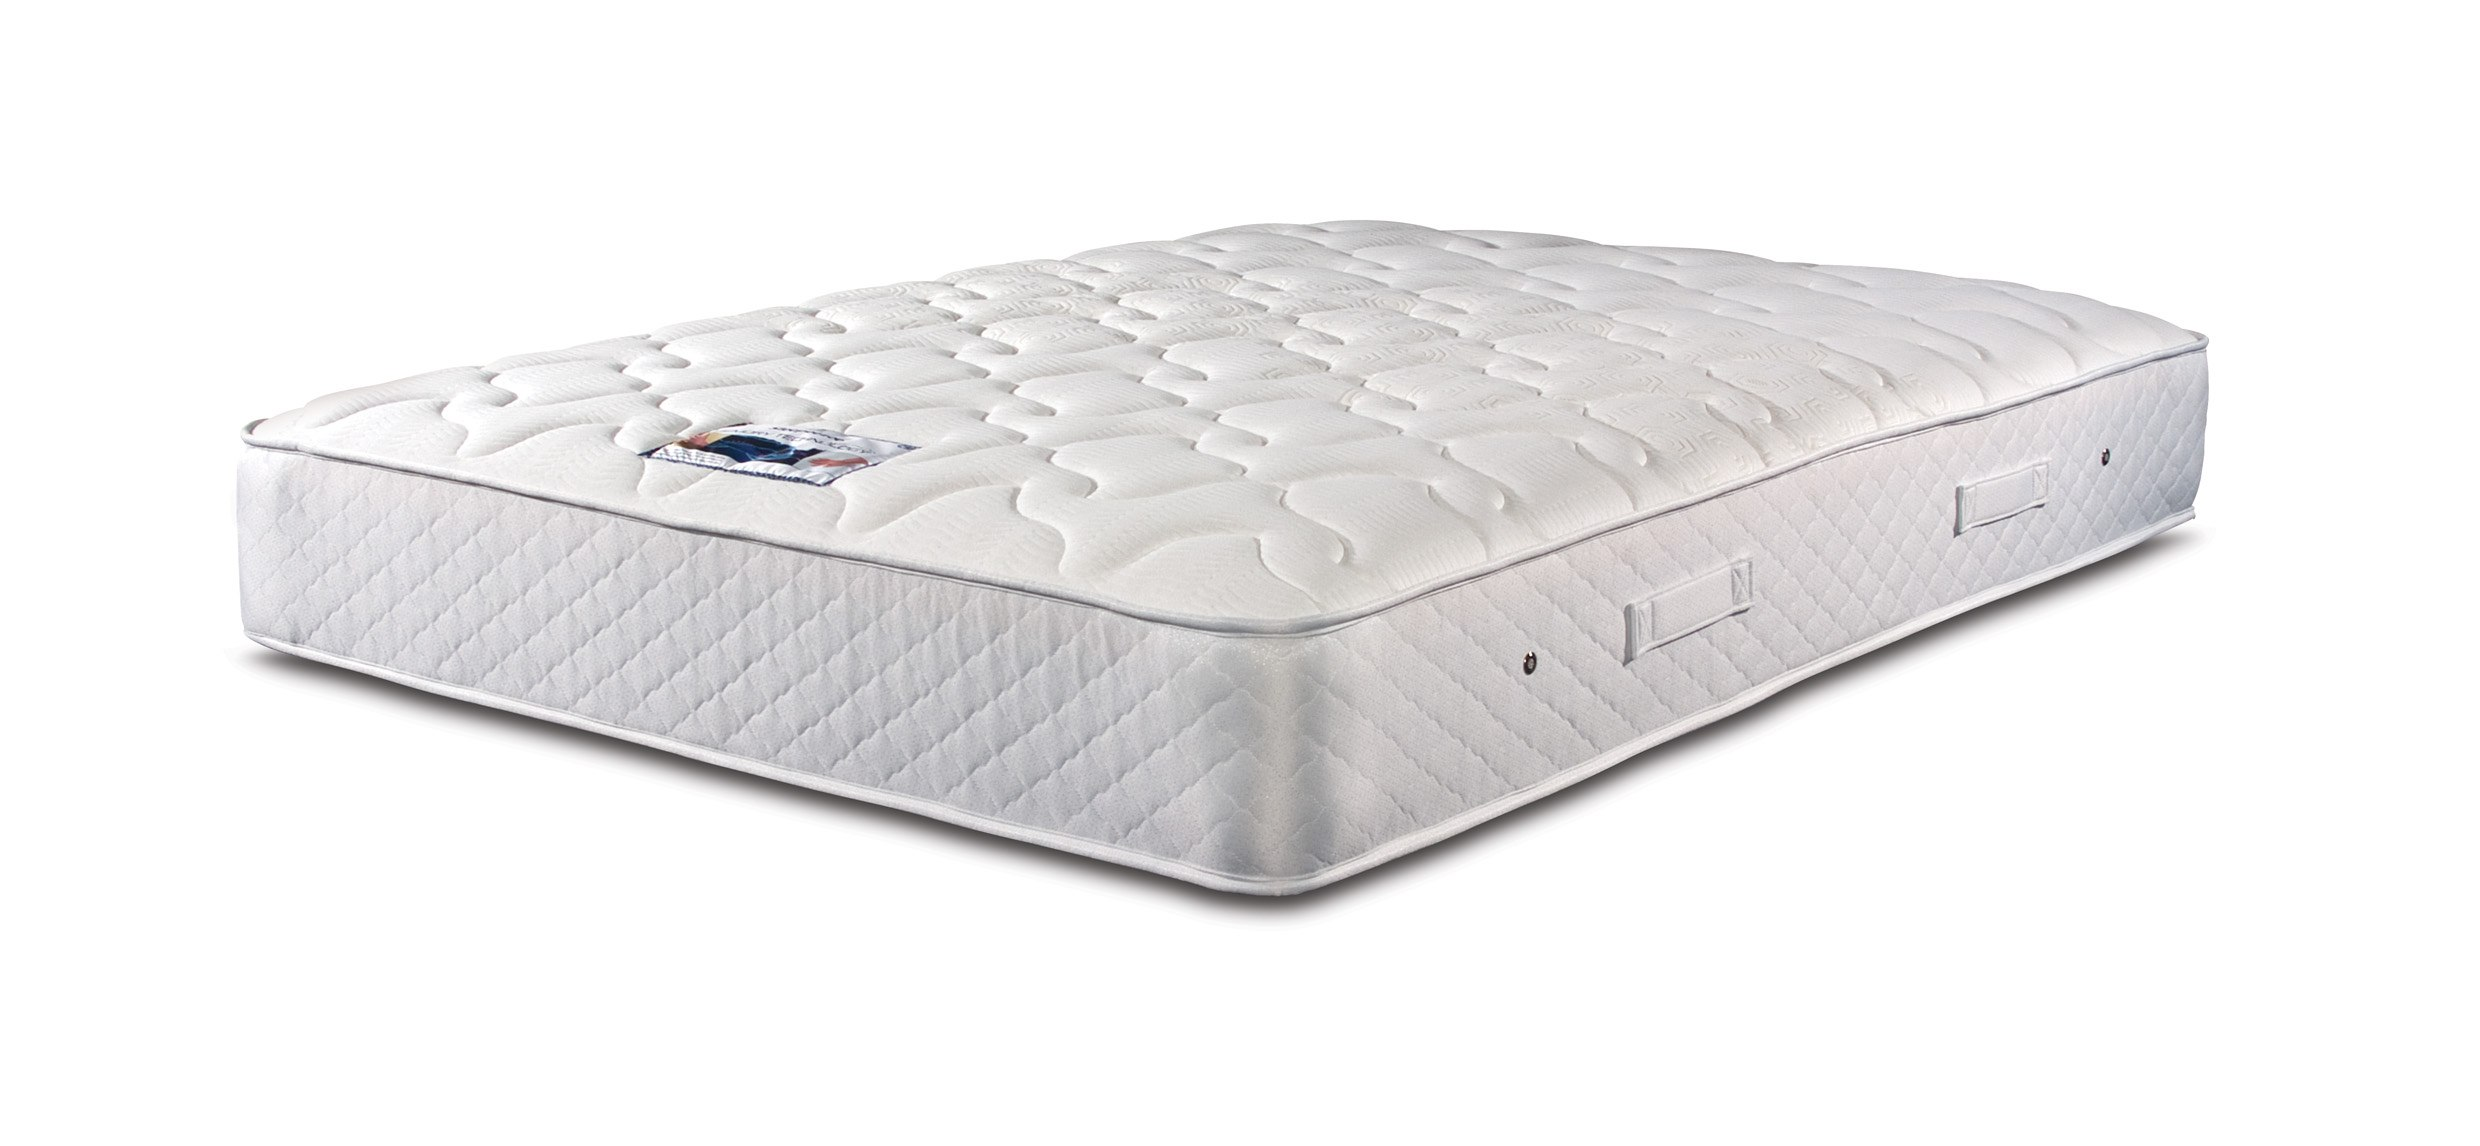 Memory Comfort 800 Mattress available from the world of beds, doncaster, south yorkshire